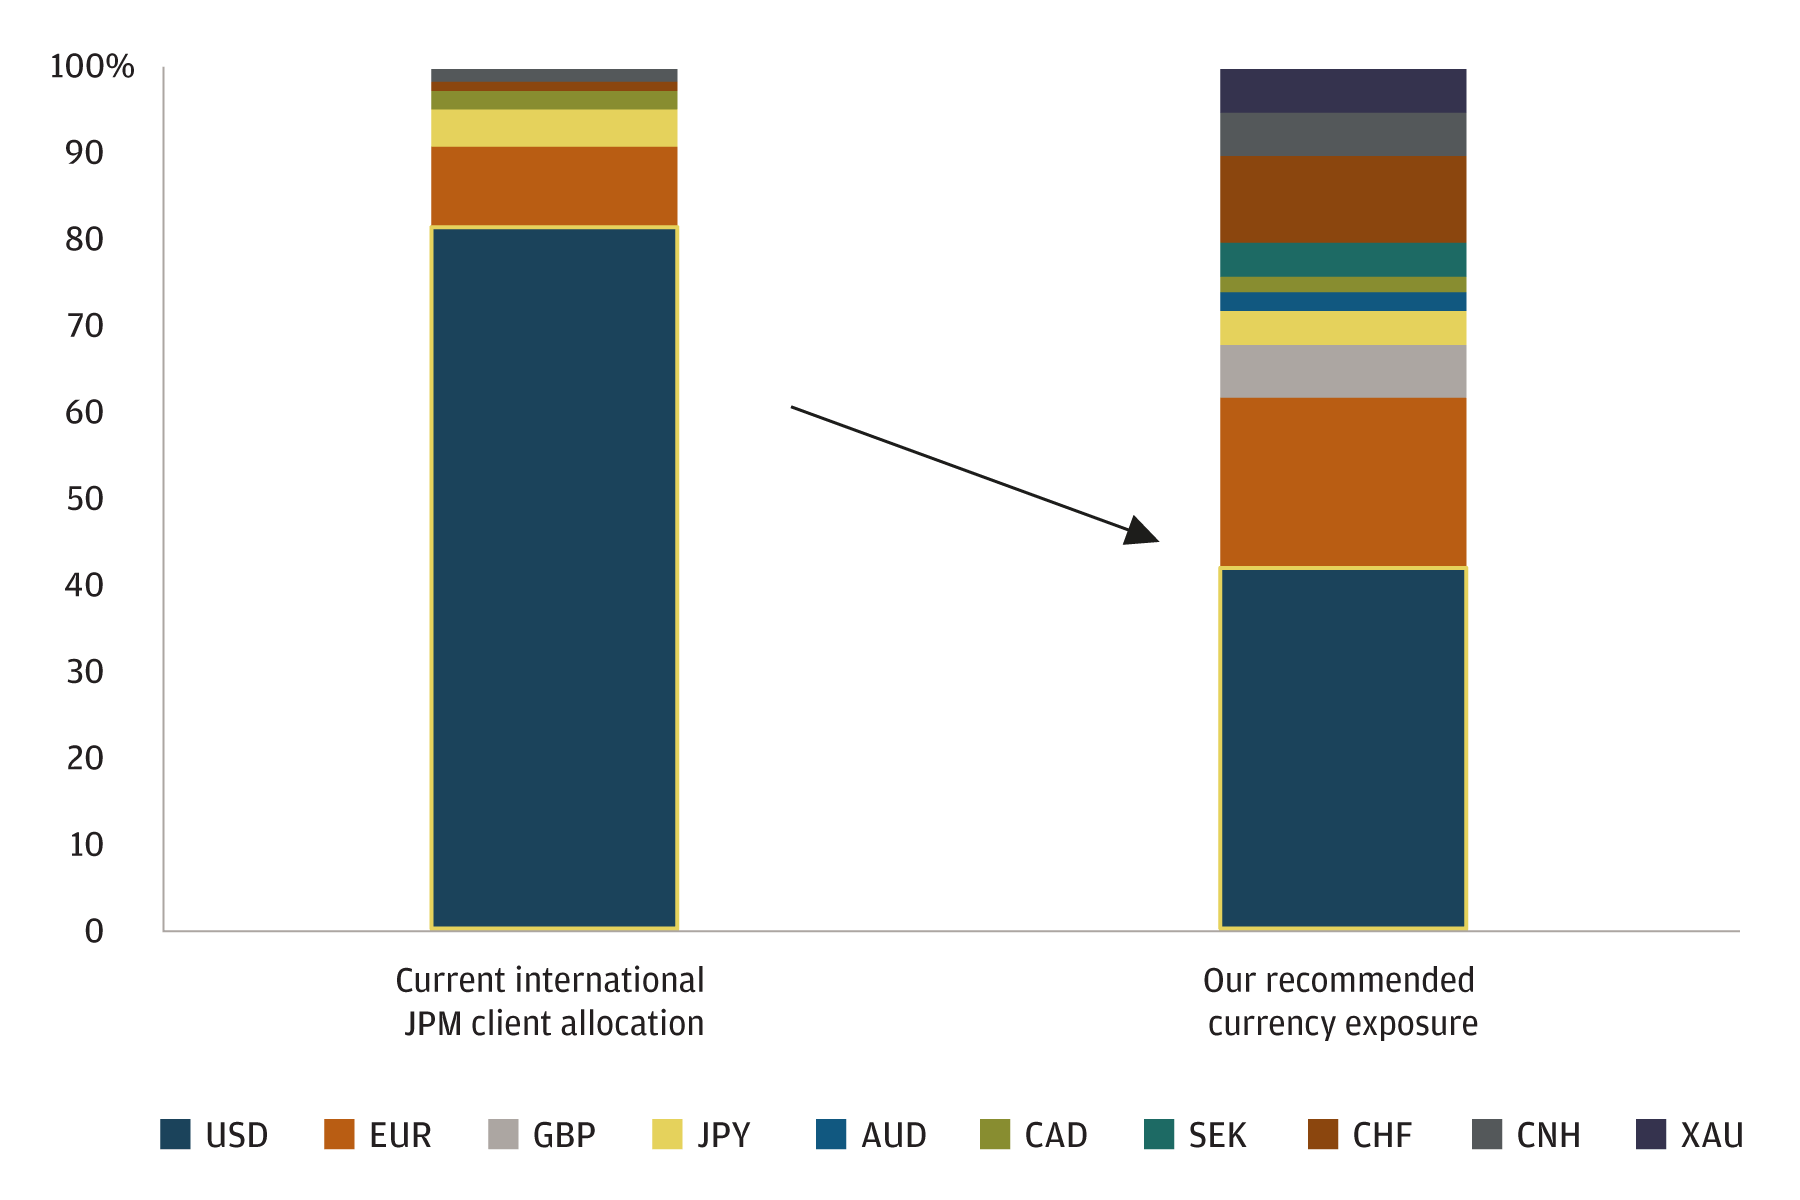 Bar chart shows an example current international JPM client allocation of various currencies, compared with what our recommended currency exposure is. The chart shows that we think an investor's allocation to the USD should decreased.